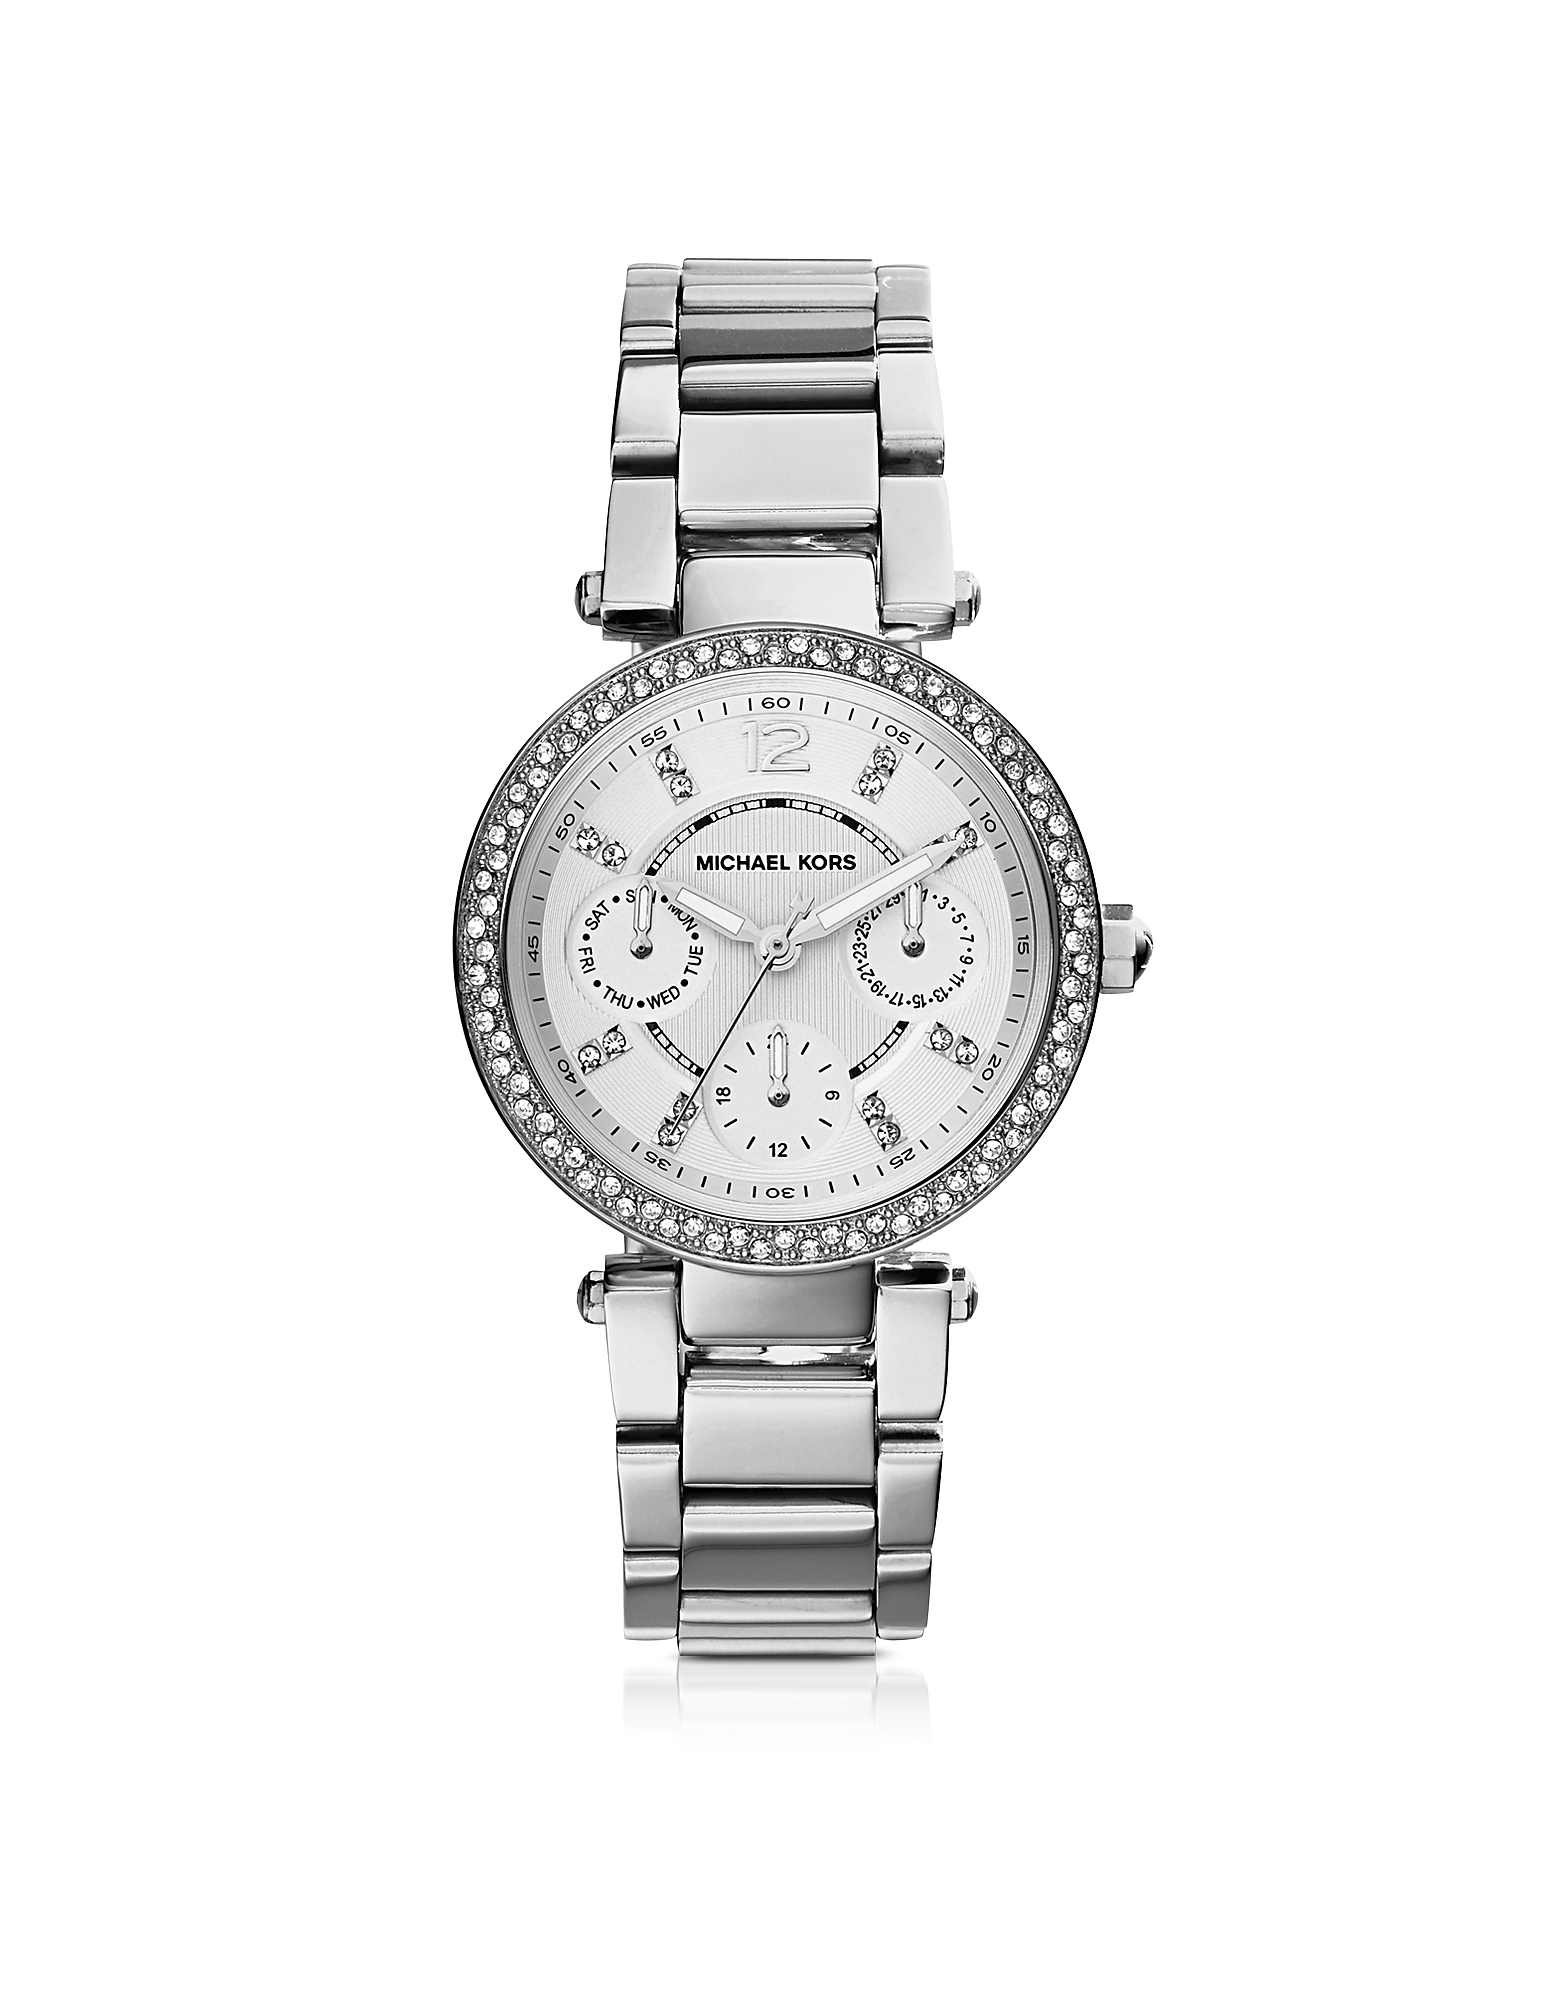 Michael Kors Women's Watches, Parker Stainless Steel Women's Watch